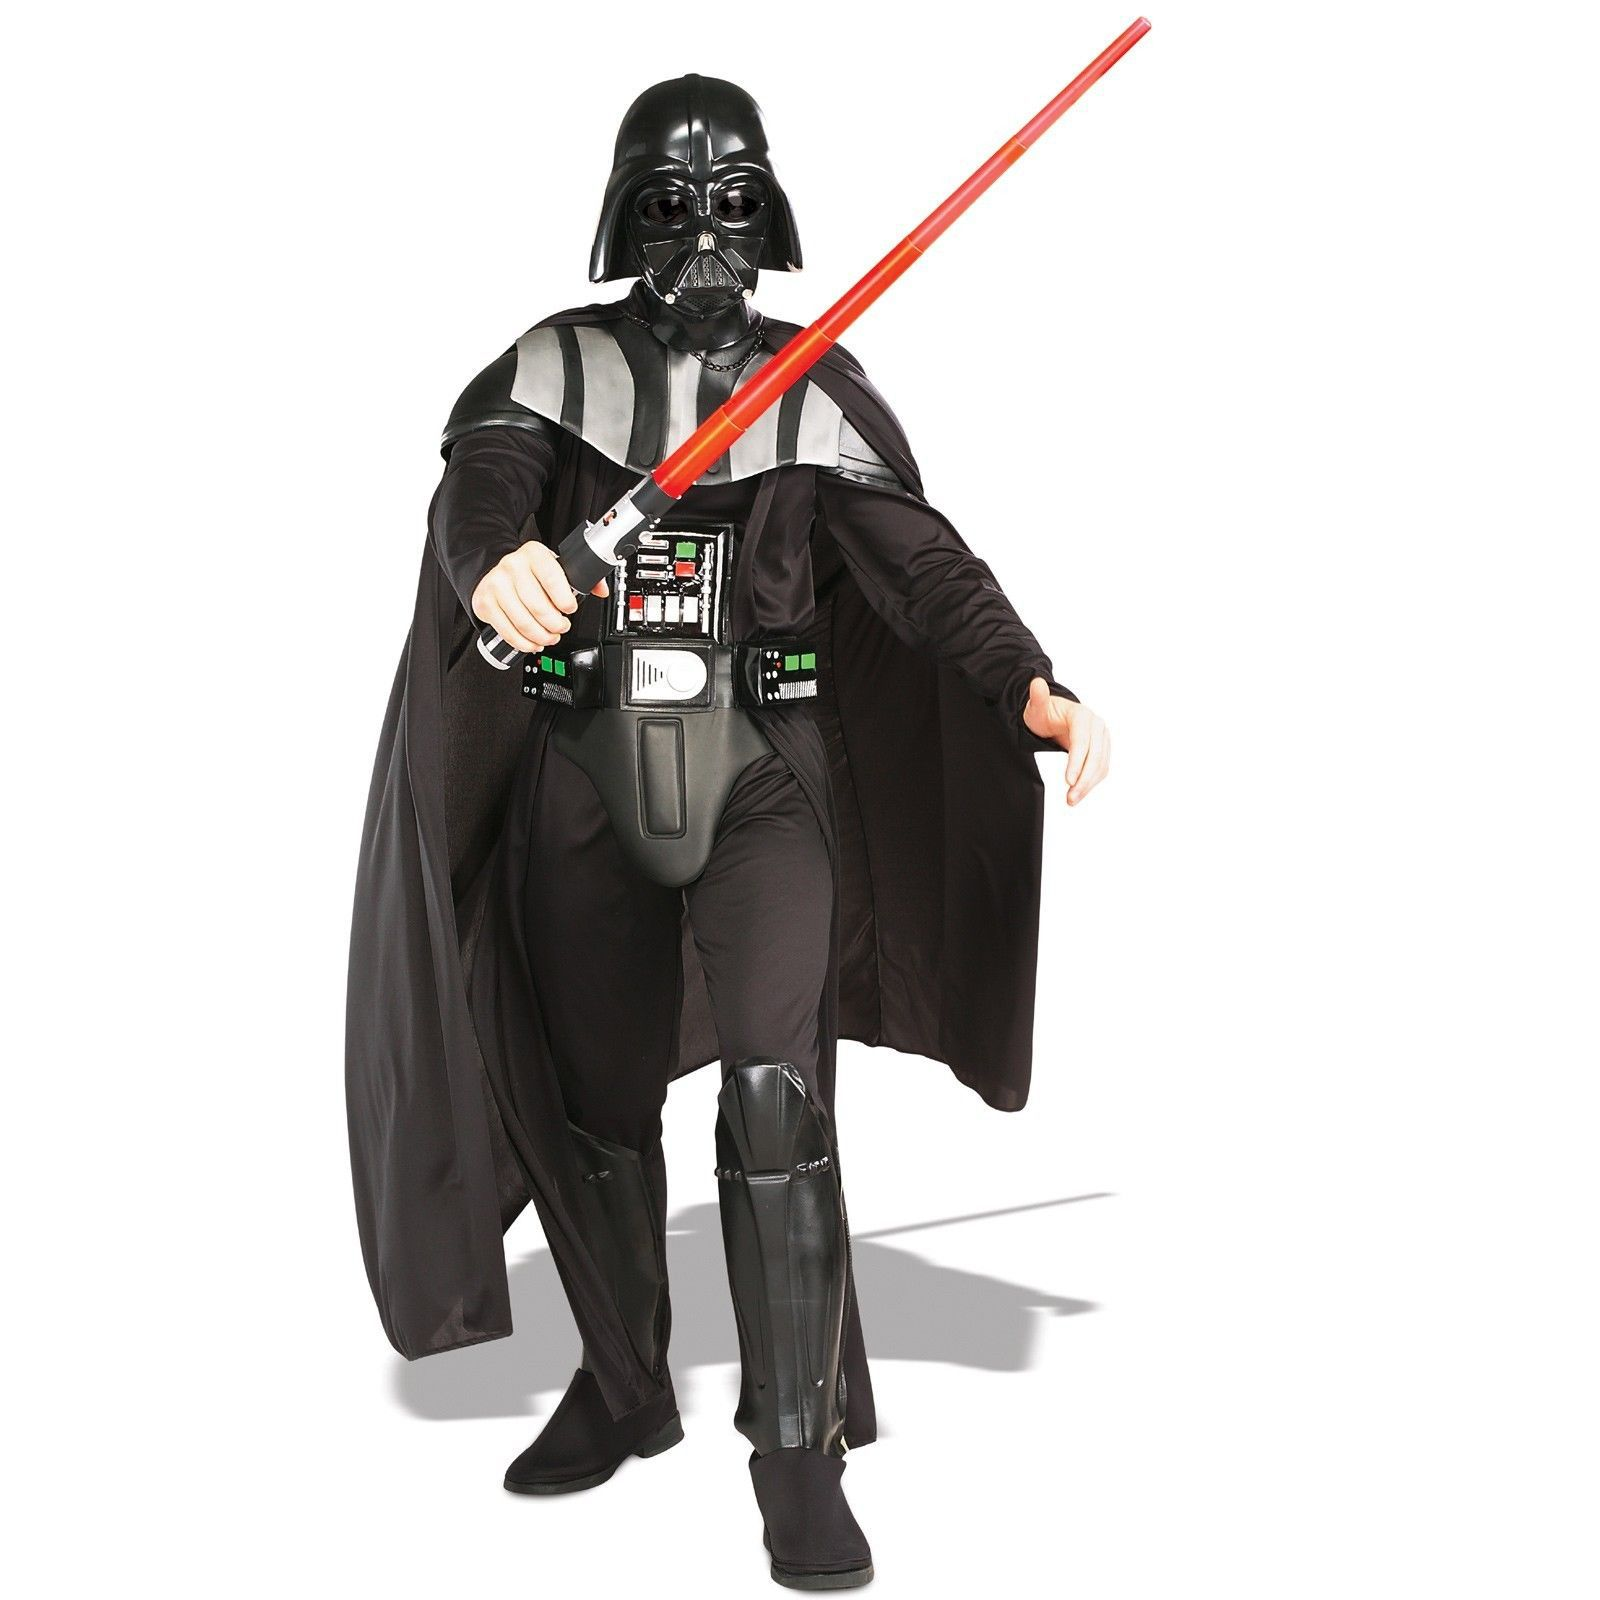 Adult Deluxe Darth Vader Star Wars Costume Rubies 56077 XL